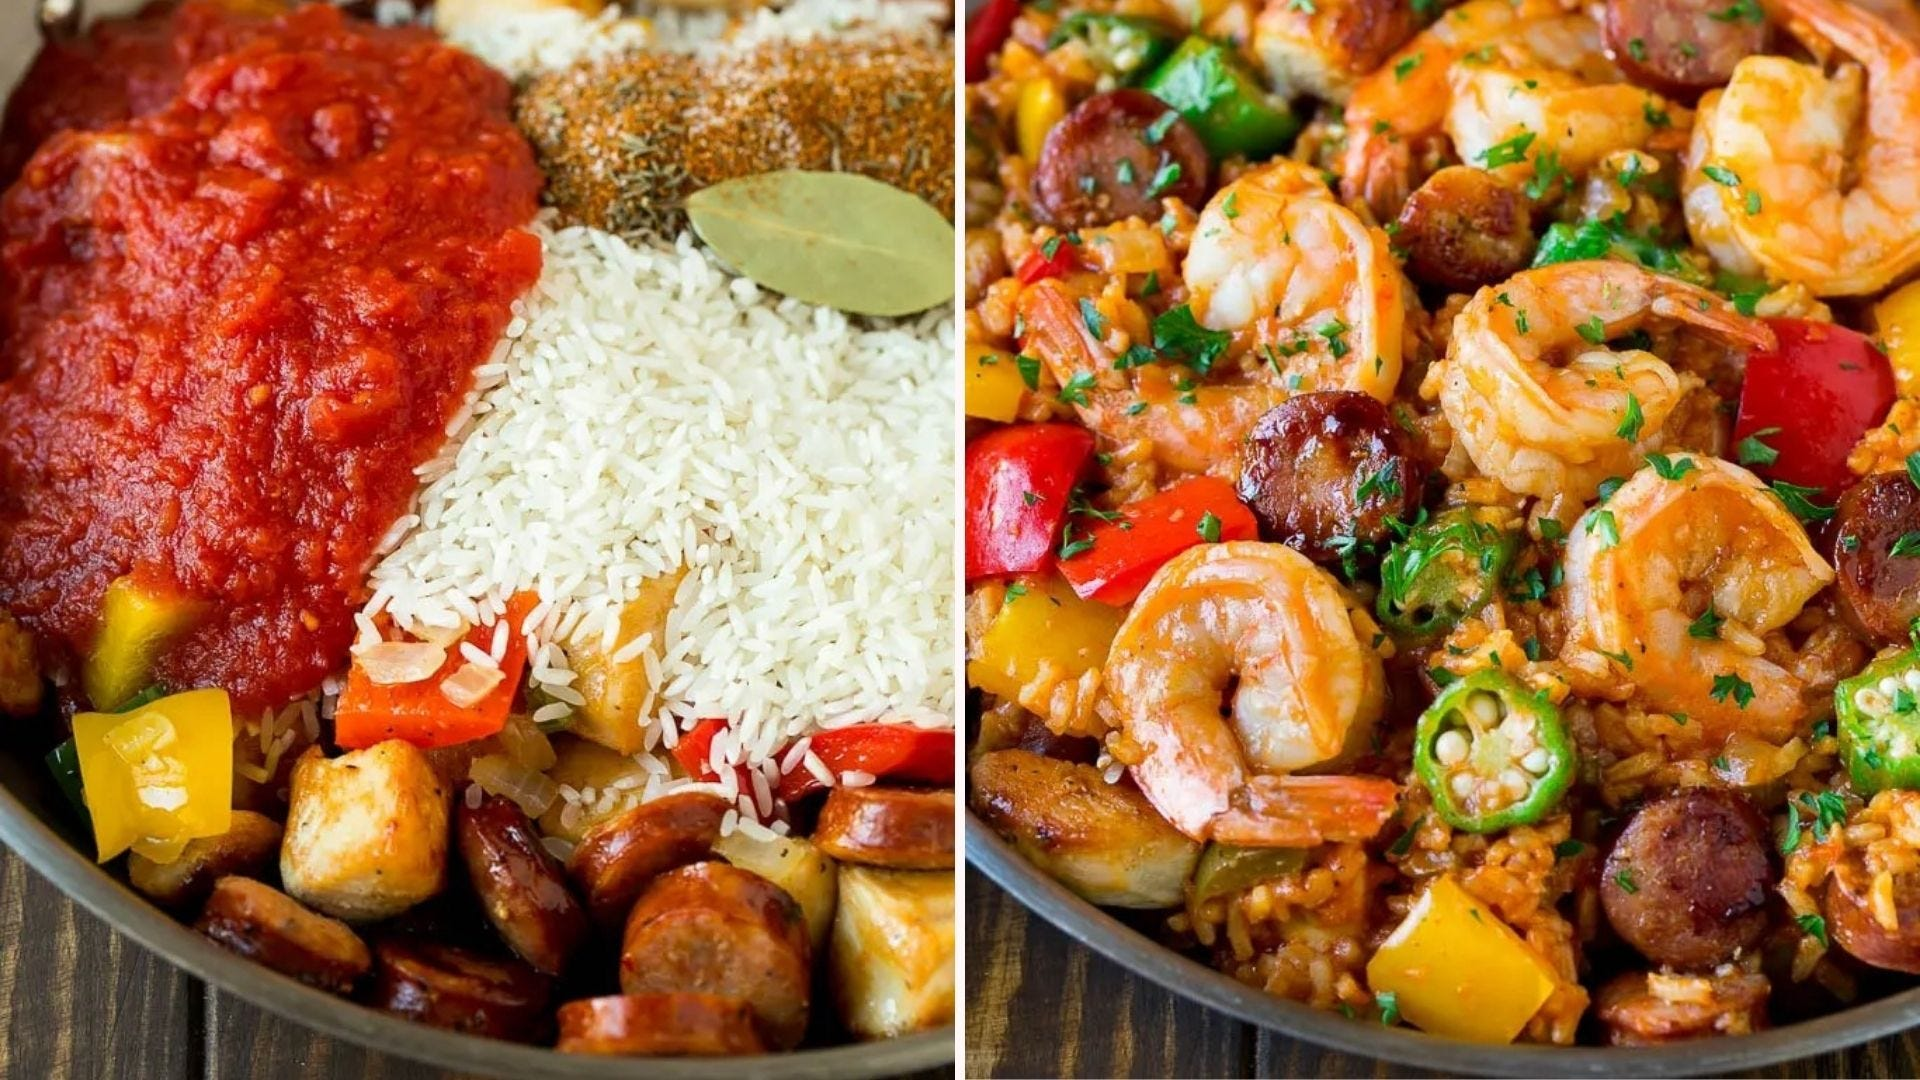 All the jambalaya ingredients in a skillet, and a plate full of the finished dish.